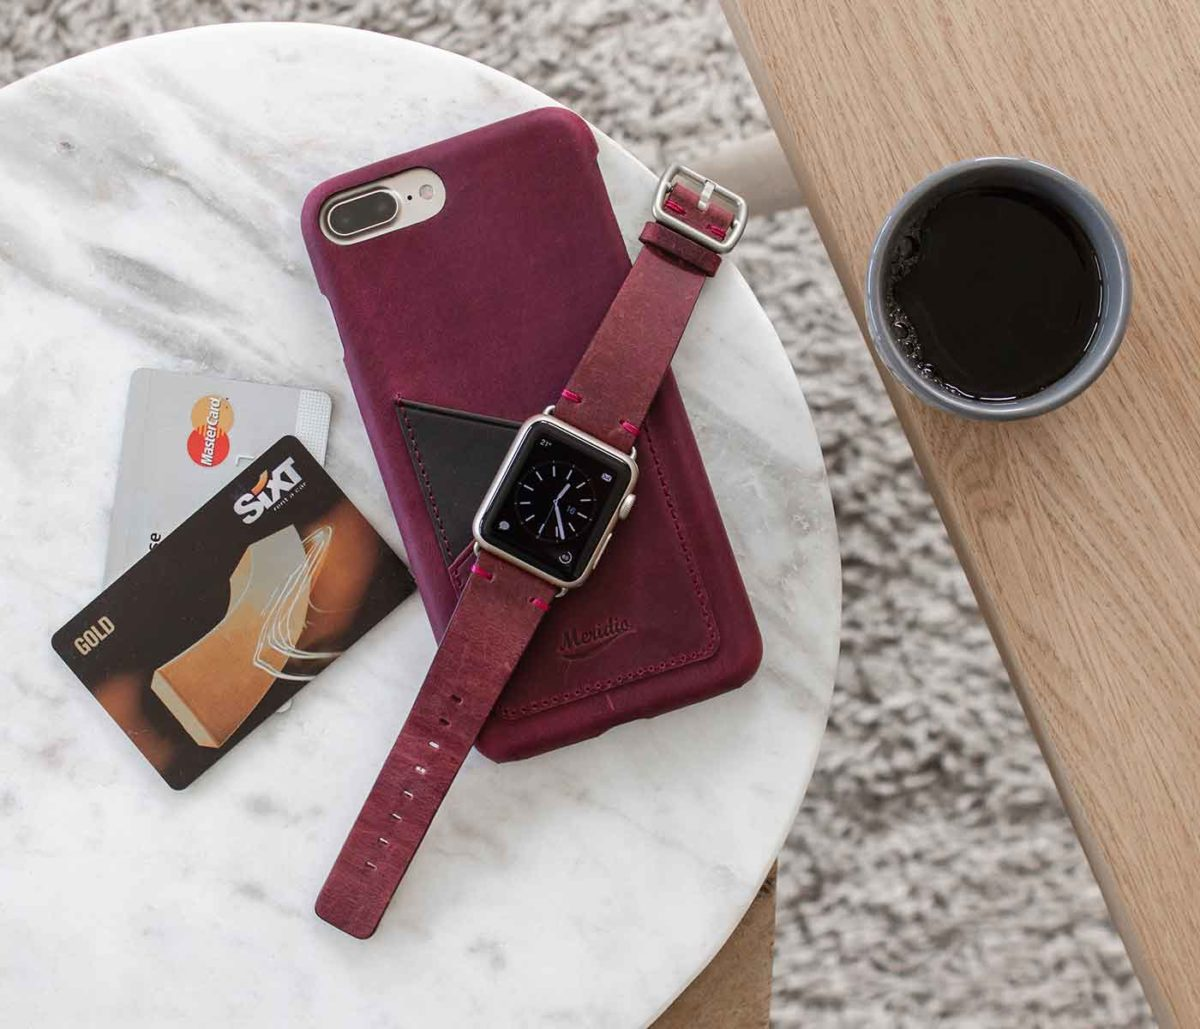 Grapevine-Iphone-leather-case-and-an-Apple-watch-red-band-on-top-bs